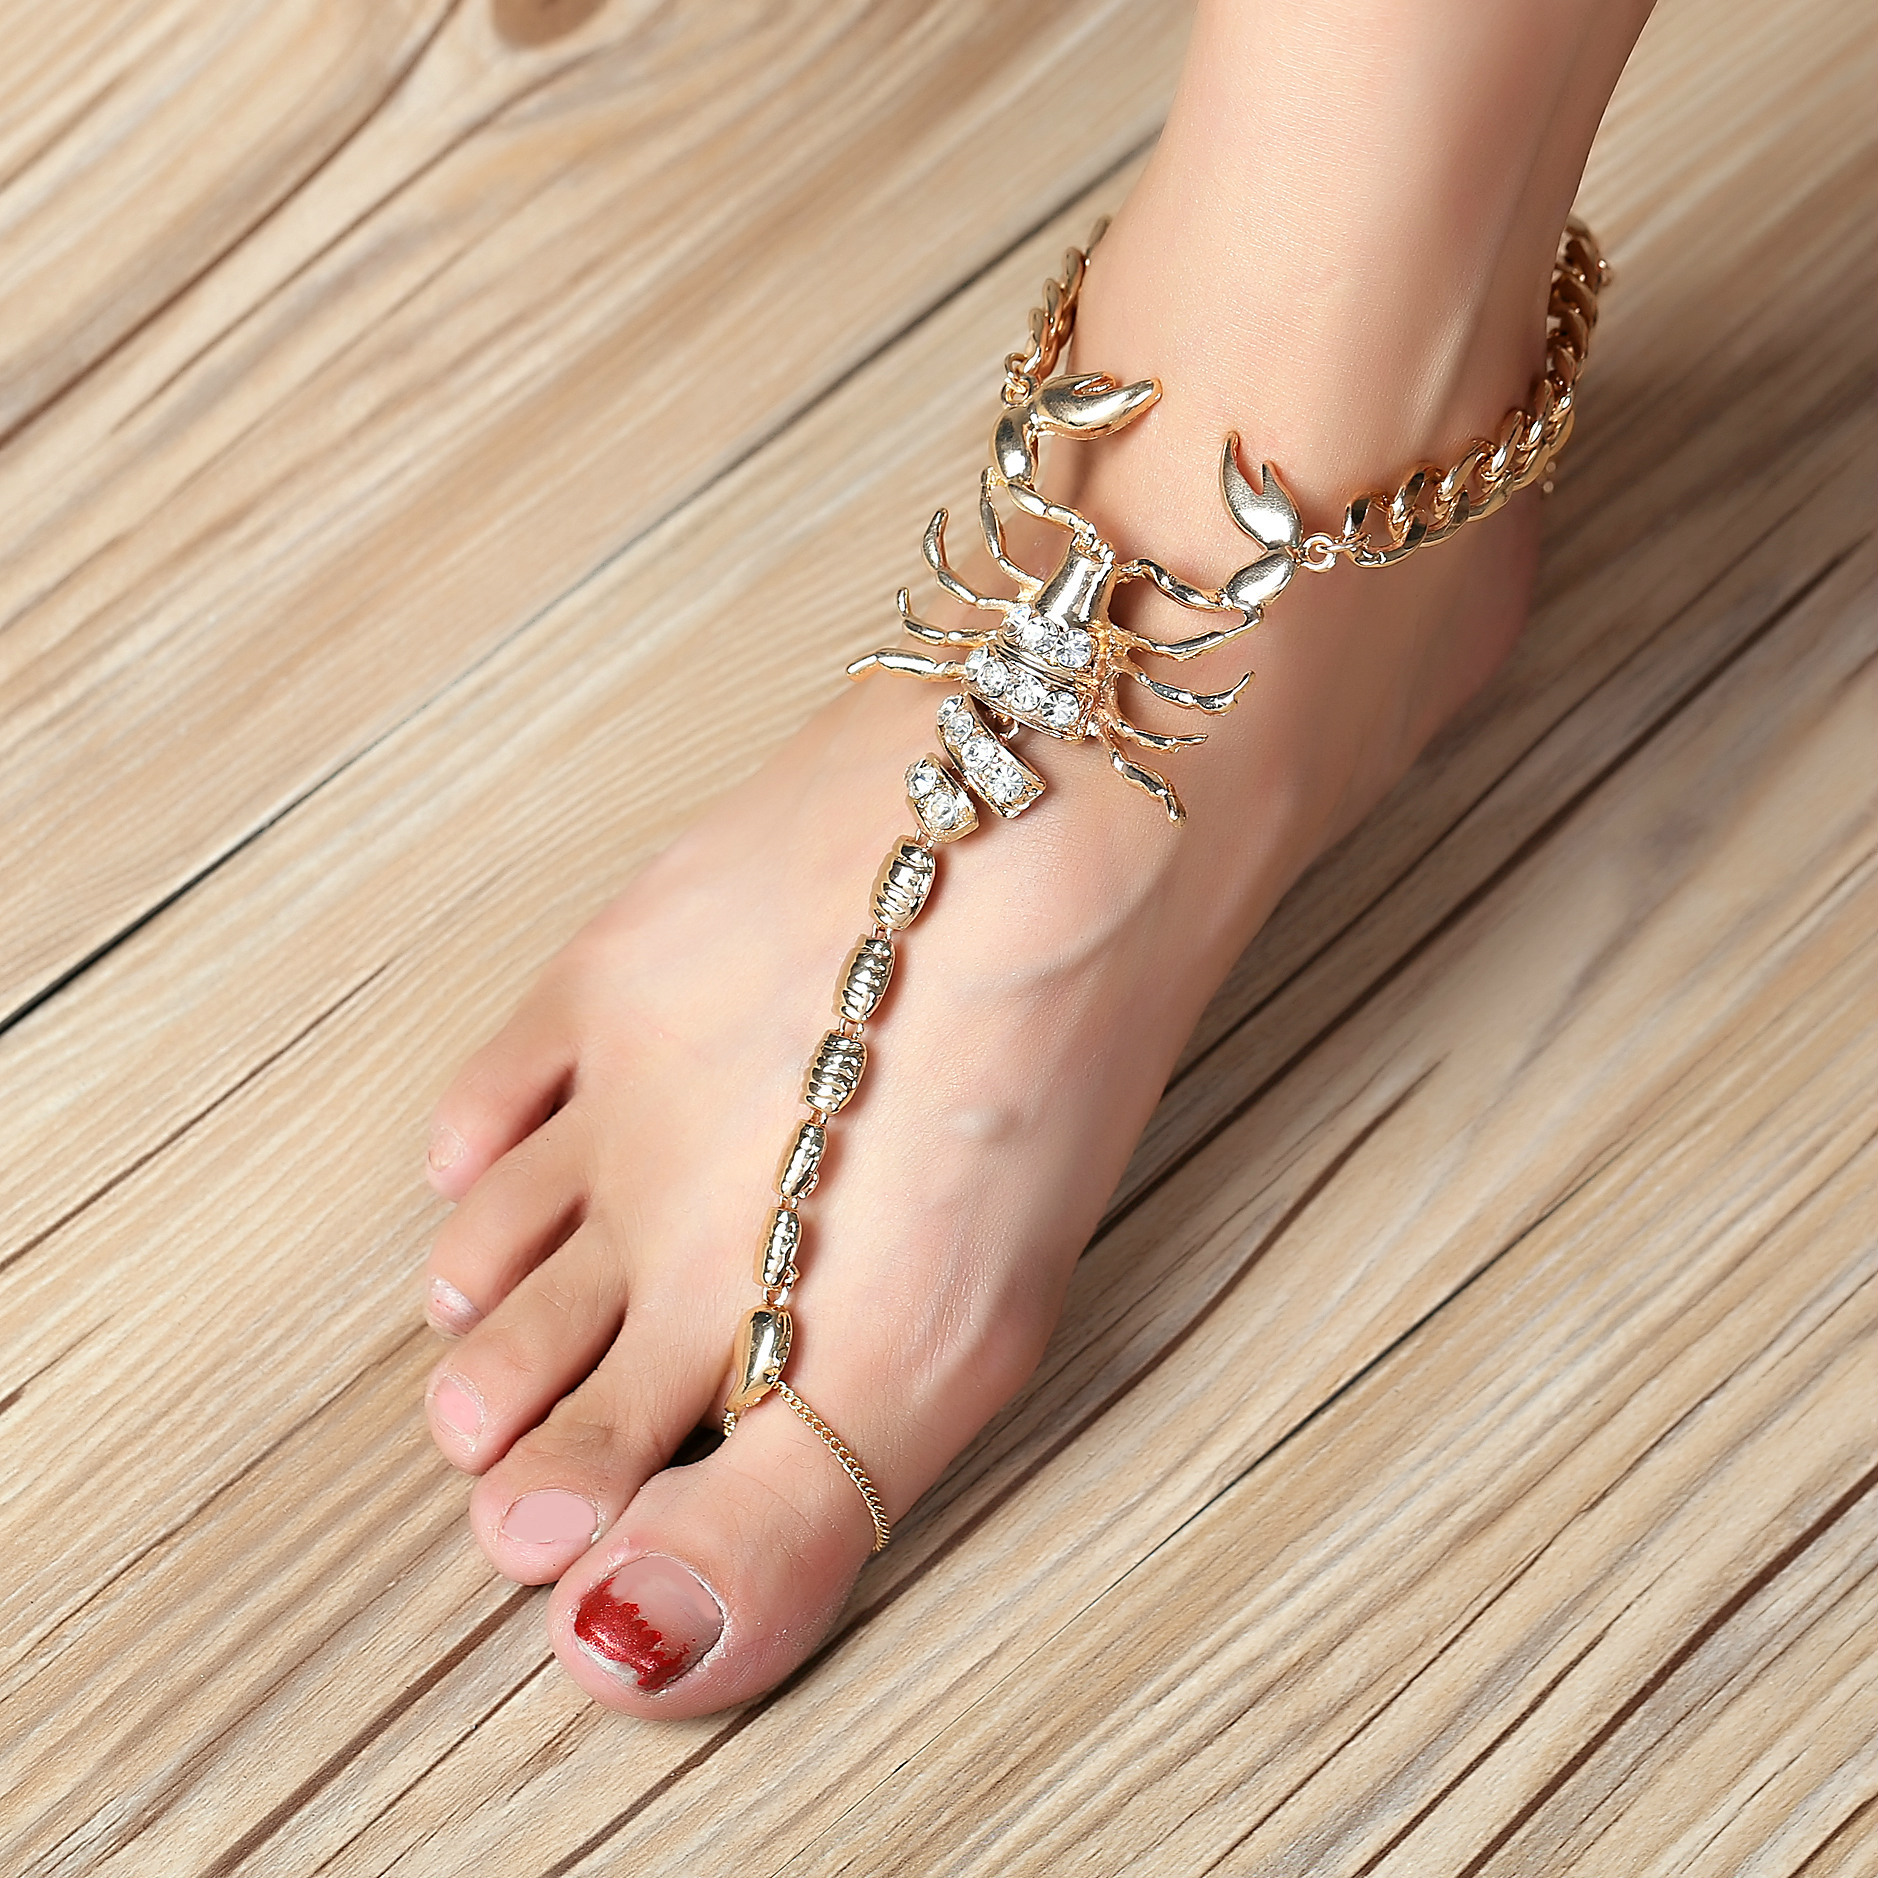 platinum bracelet store expandable gift cube bridal vintage anklets gold chain womens wihte foot anklet ankle pendant product jewelry beads plated leg wedding